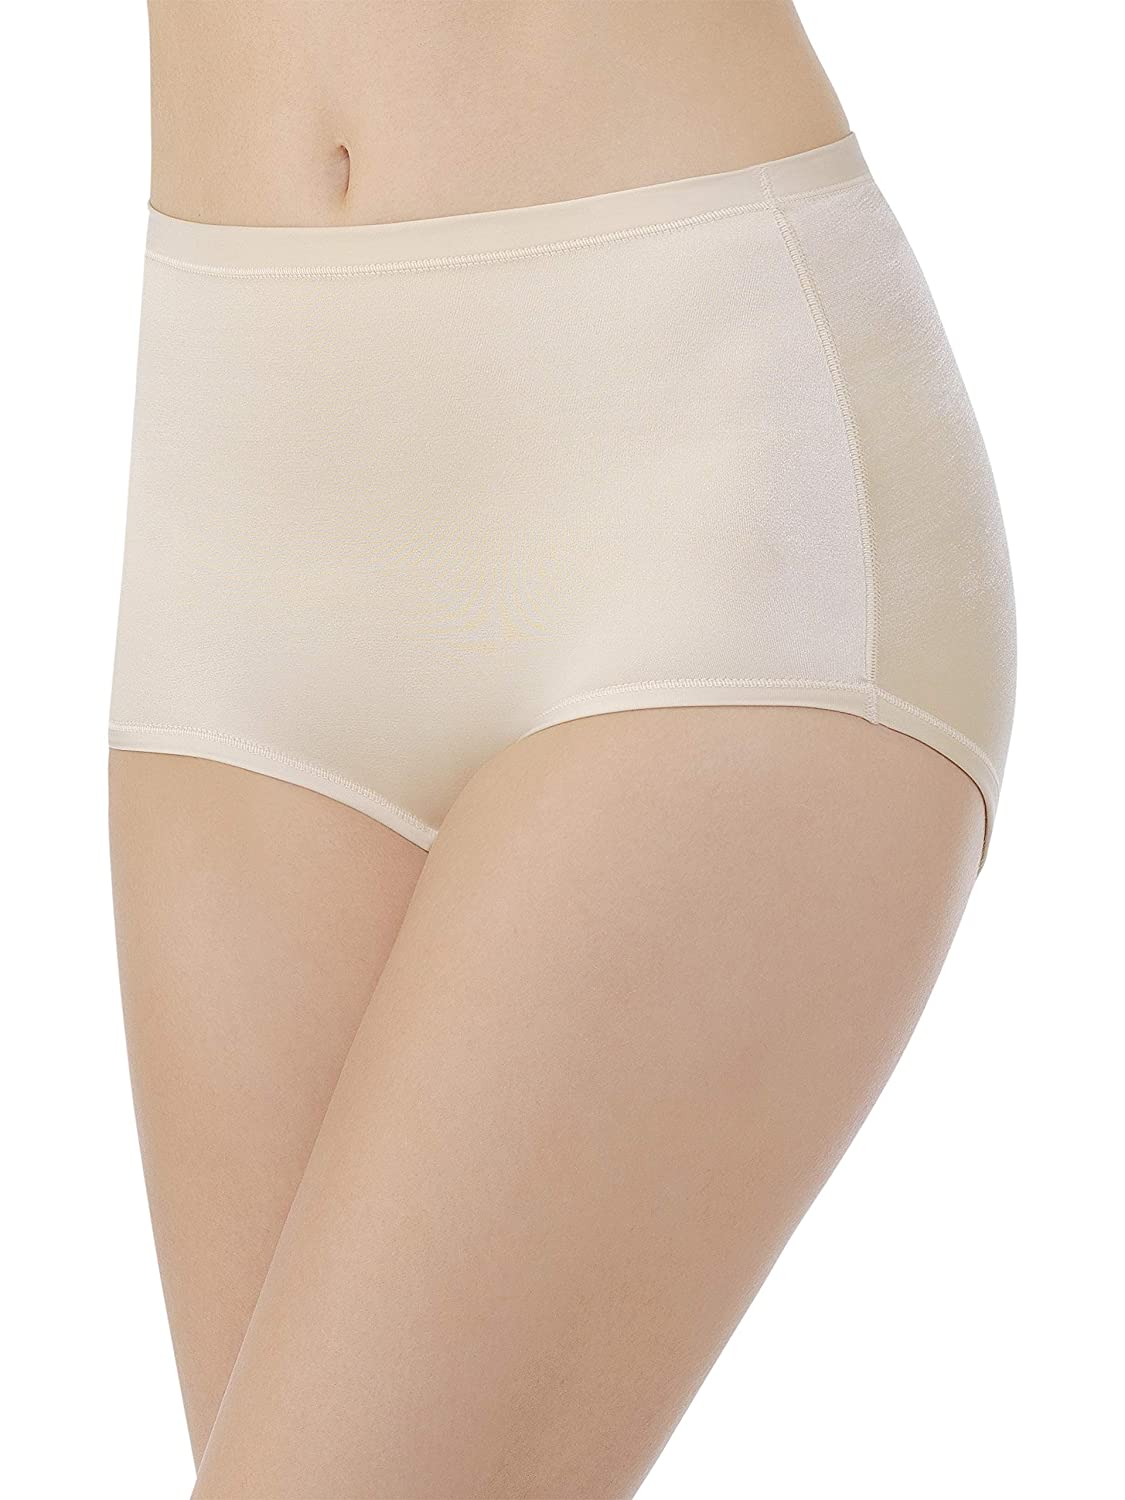 b39bbe5497a8 Vanity Fair Women's Plus Size Body Caress Brief Panty 13138 at Amazon  Women's Clothing store: Briefs Underwear